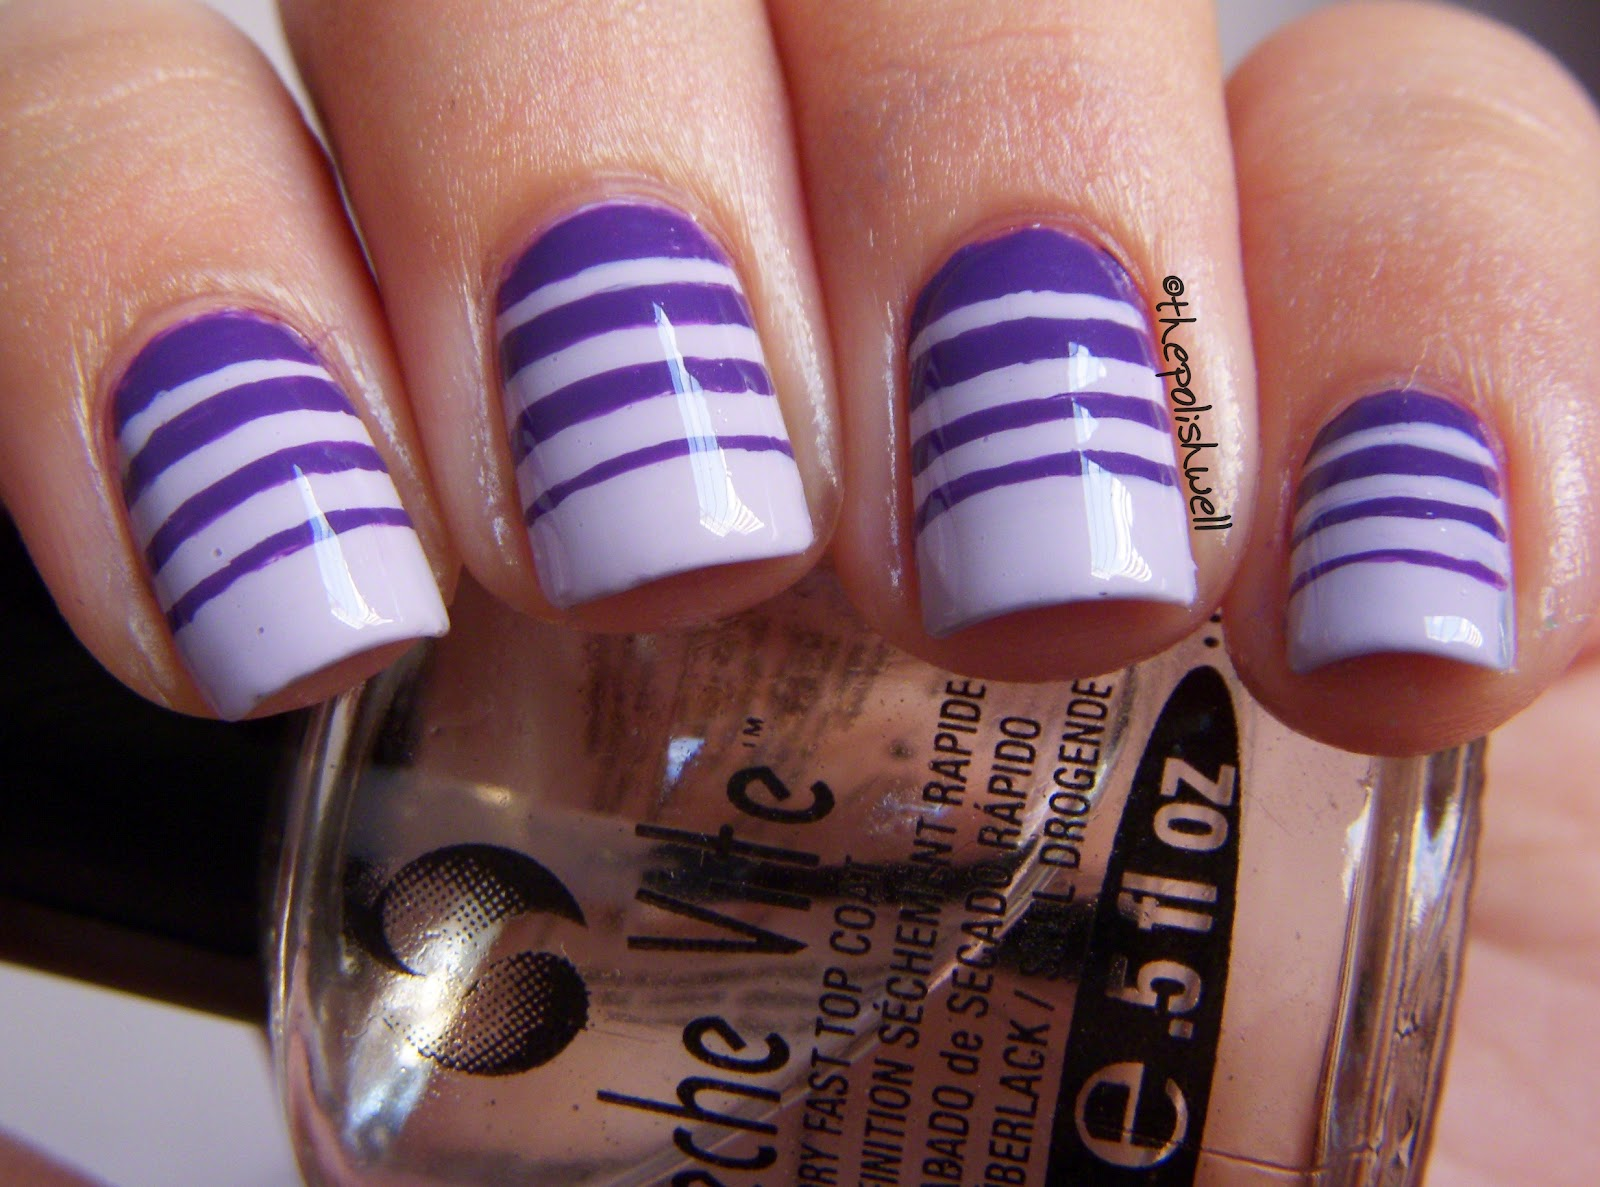 What do you think of these stripes? Which striped mani is your